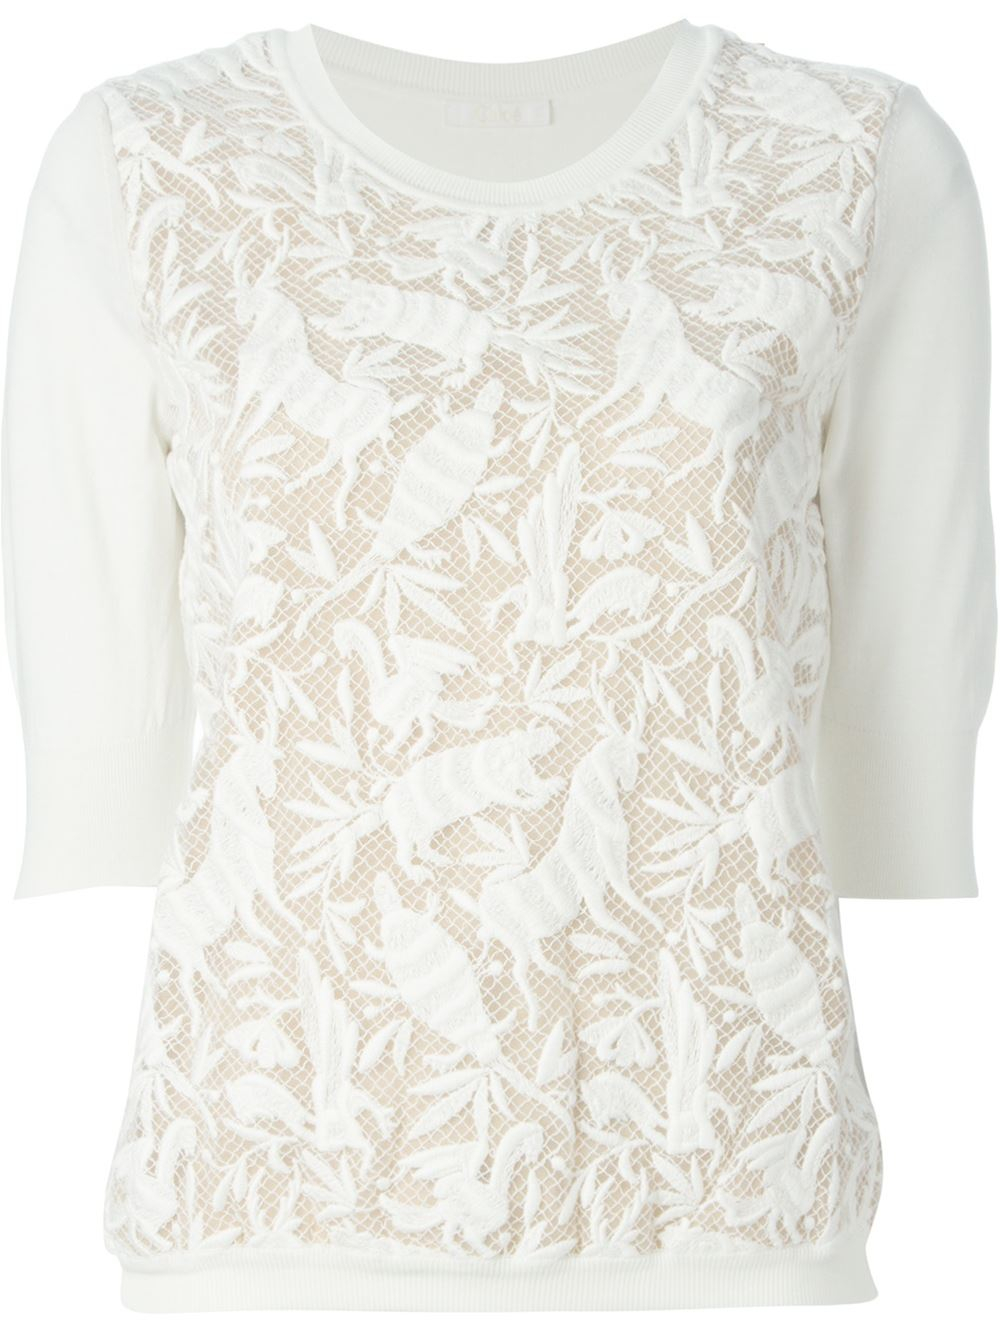 Chloé Lace Sweater in White | Lyst